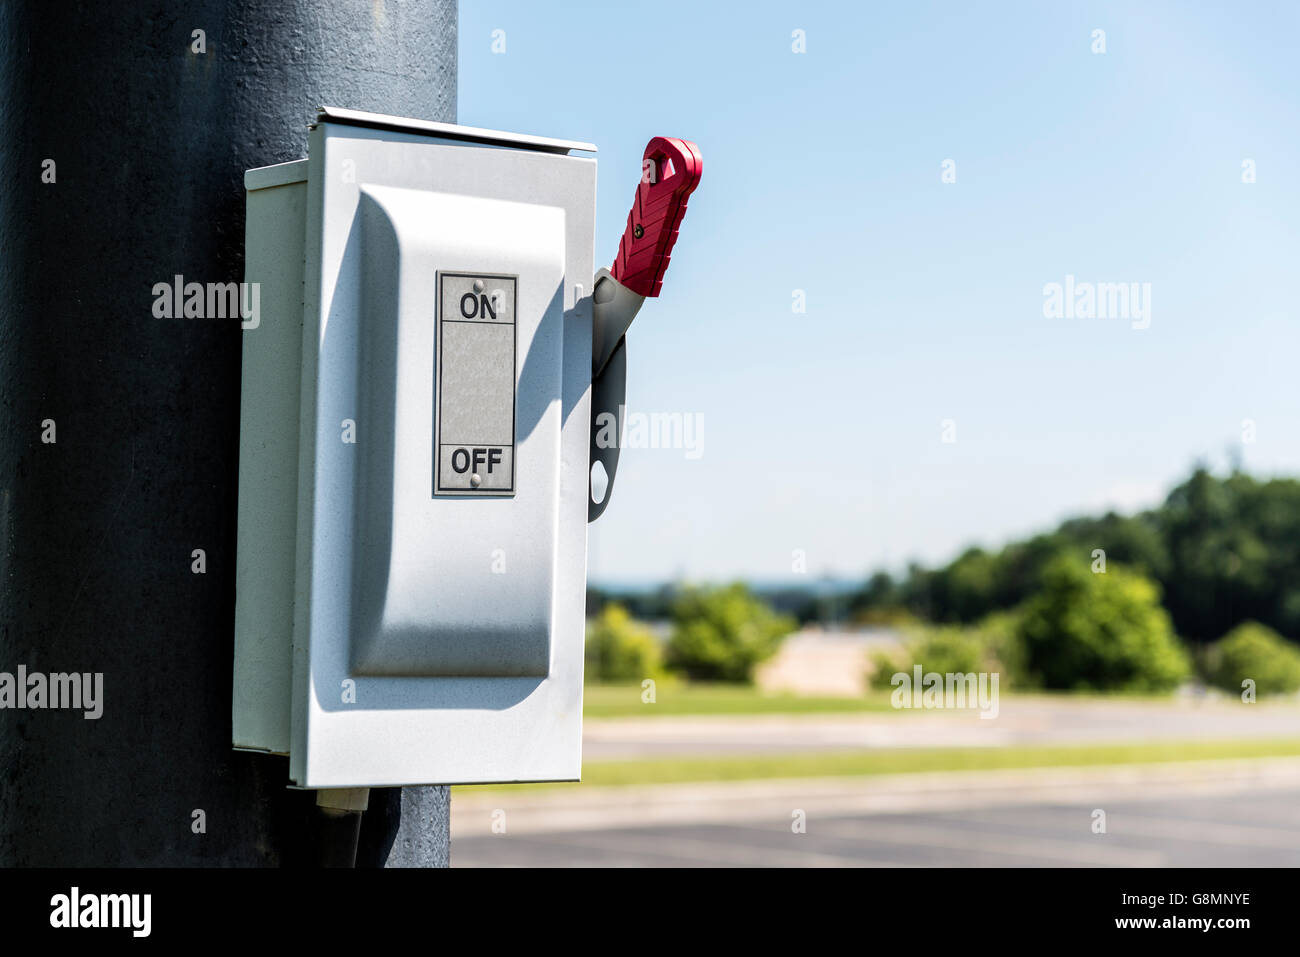 ON/OFF Lever on Electric Pole Horizontal - Stock Image